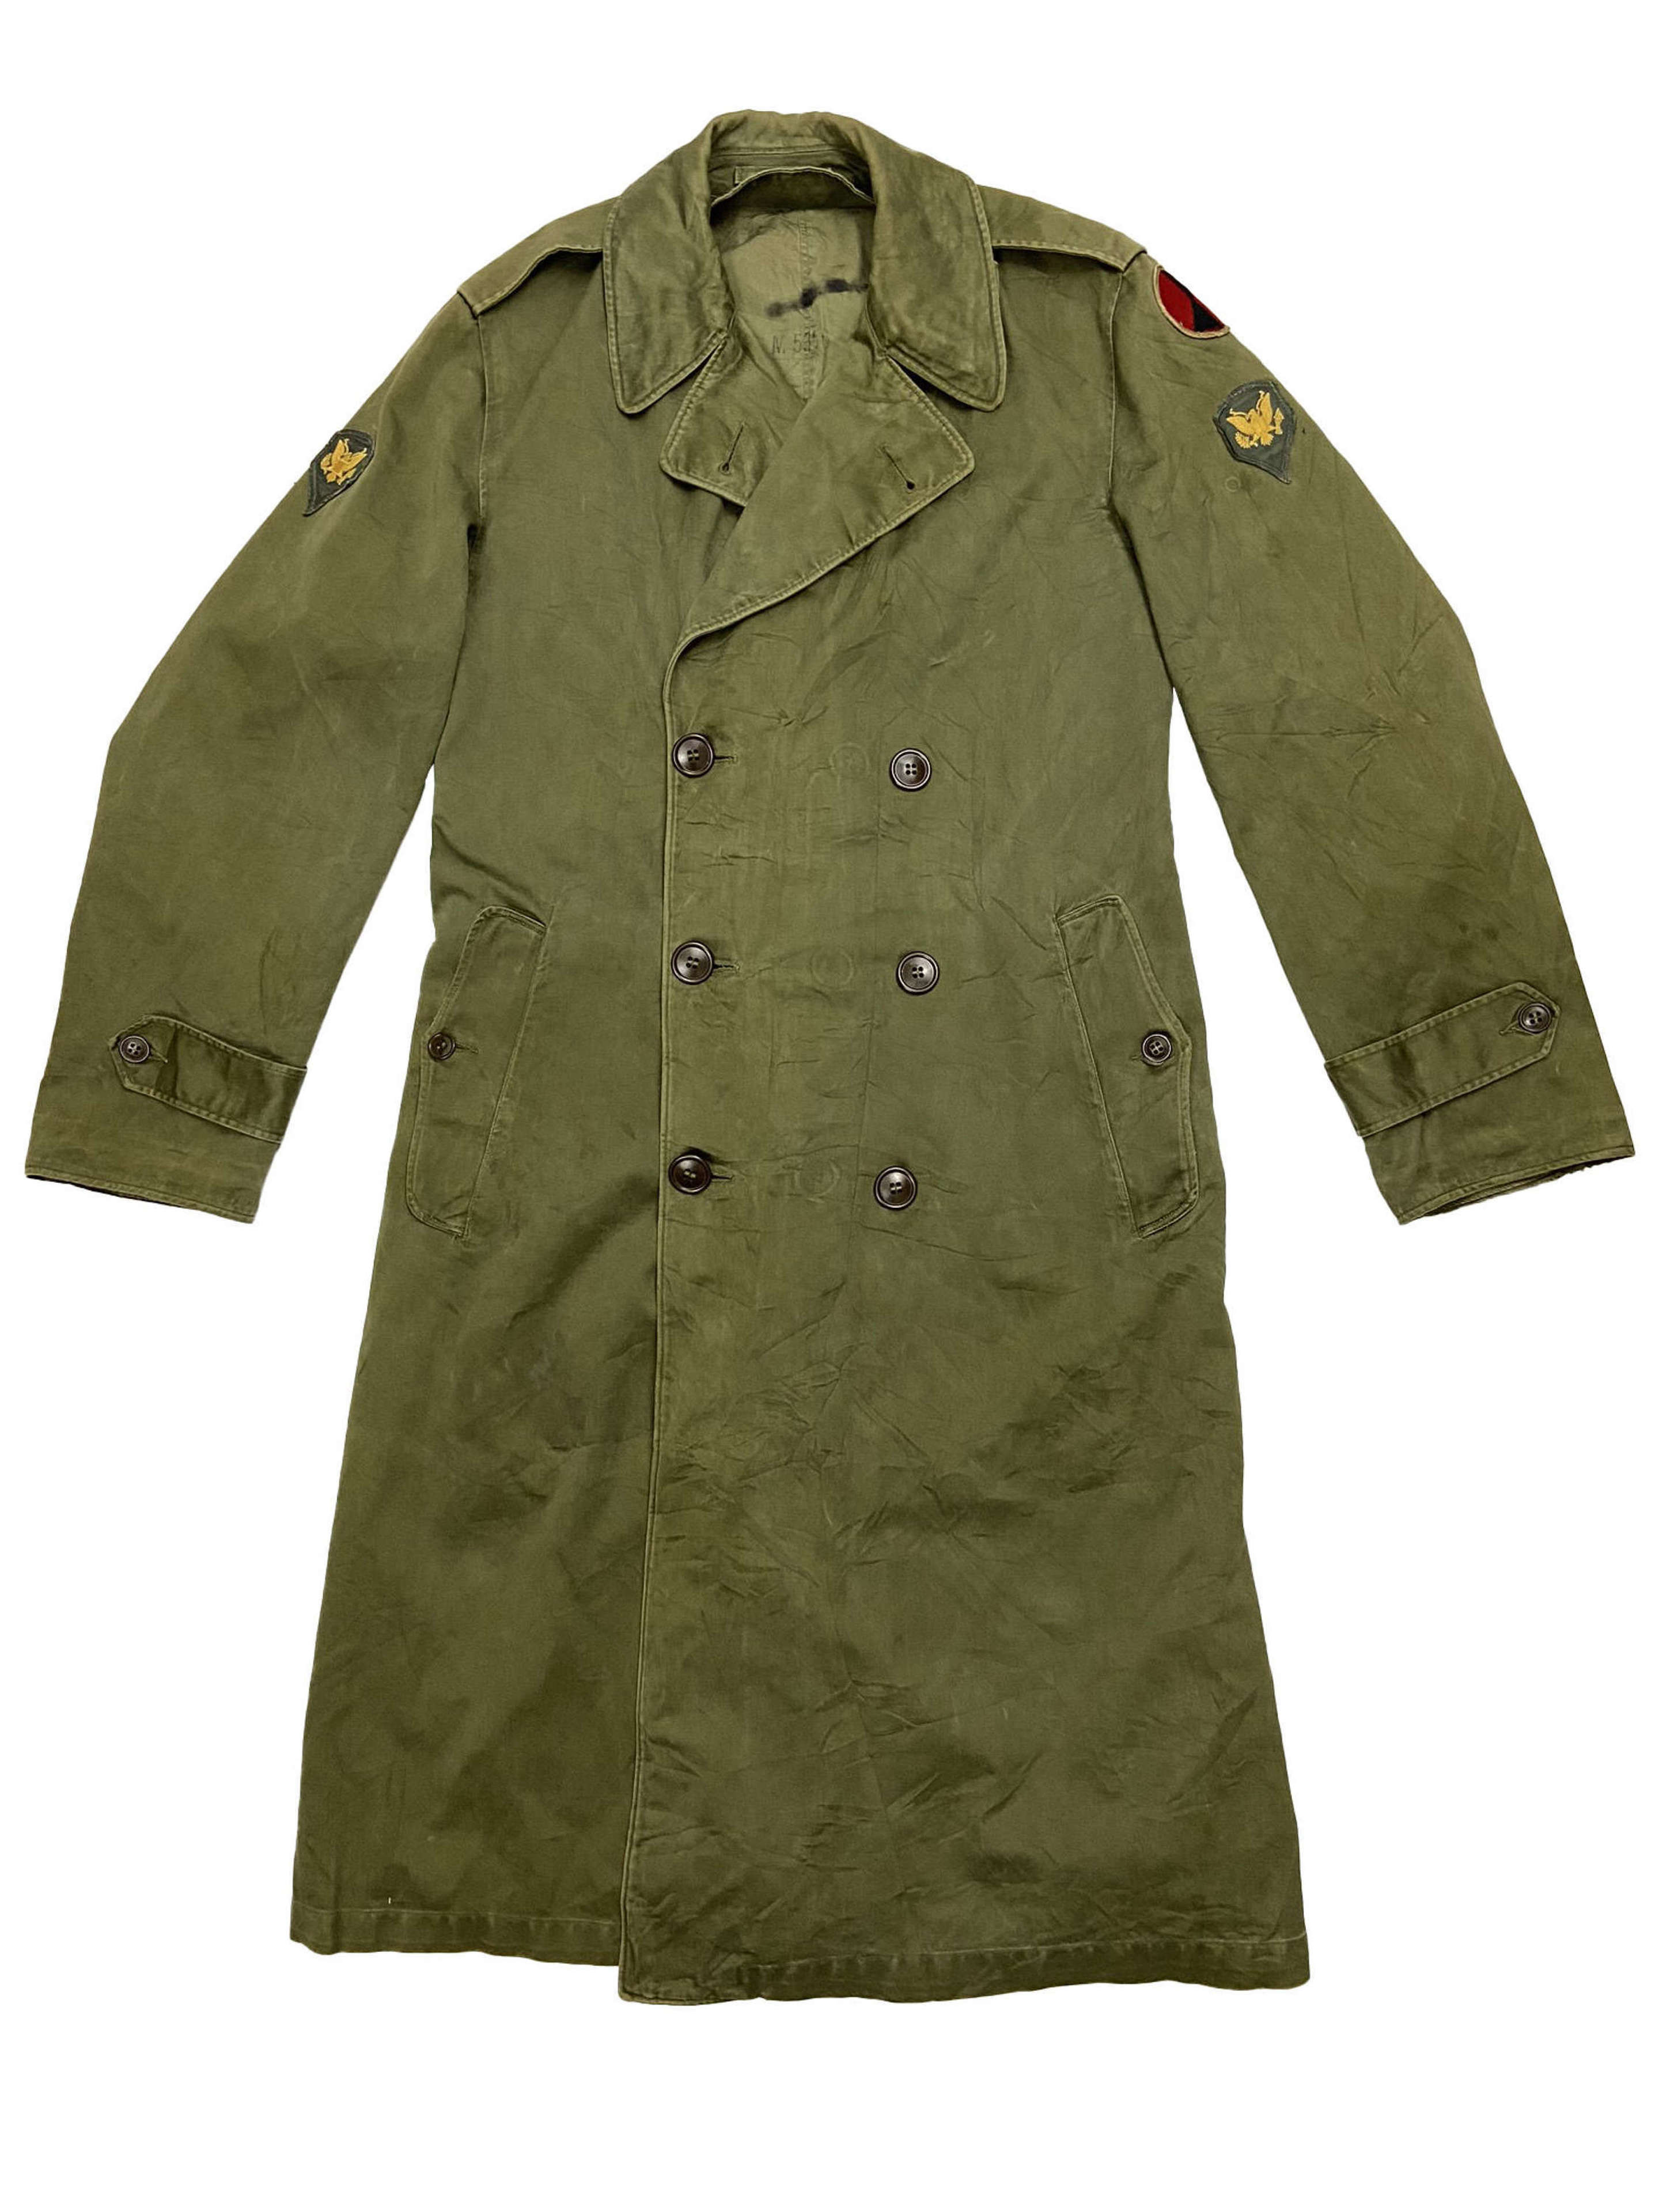 Original 1950s US Army O.G. 107 Raincoat - Size Small Long